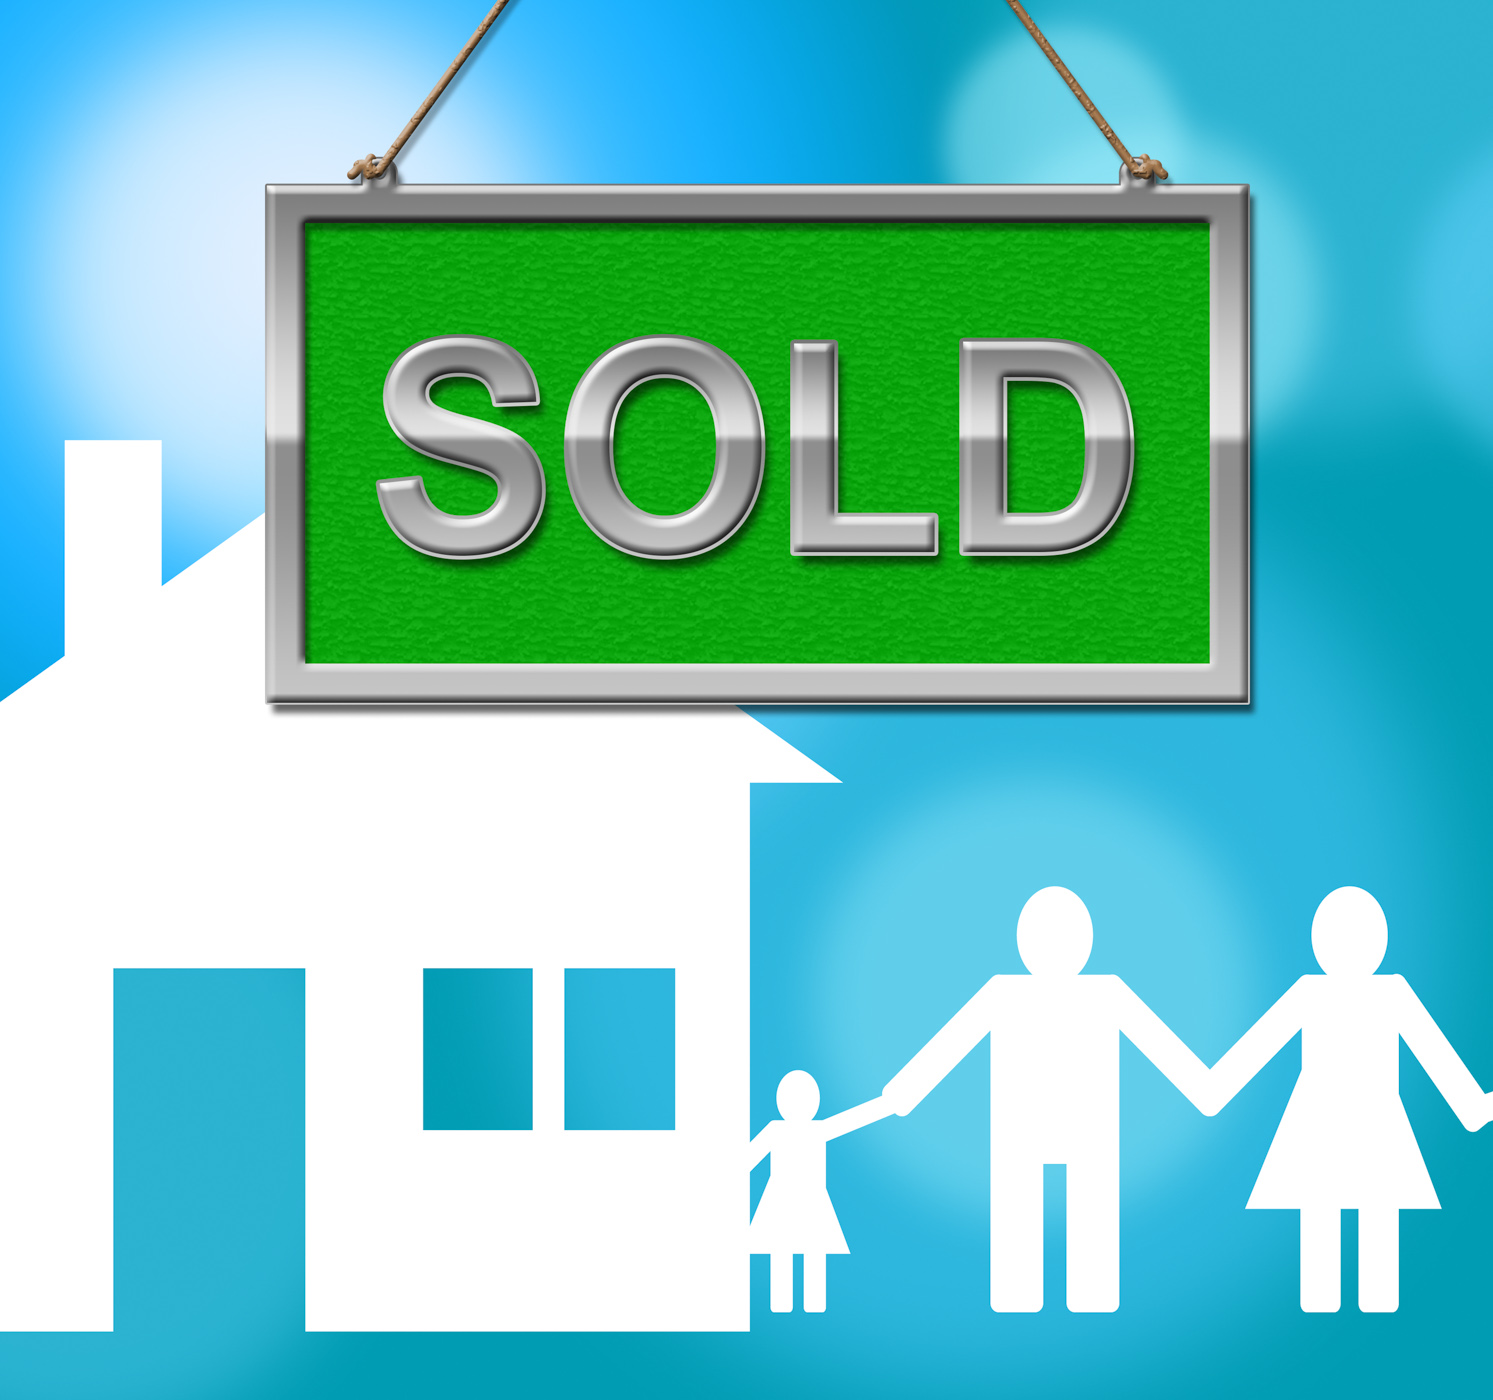 Sold house represents display properties and bungalow photo